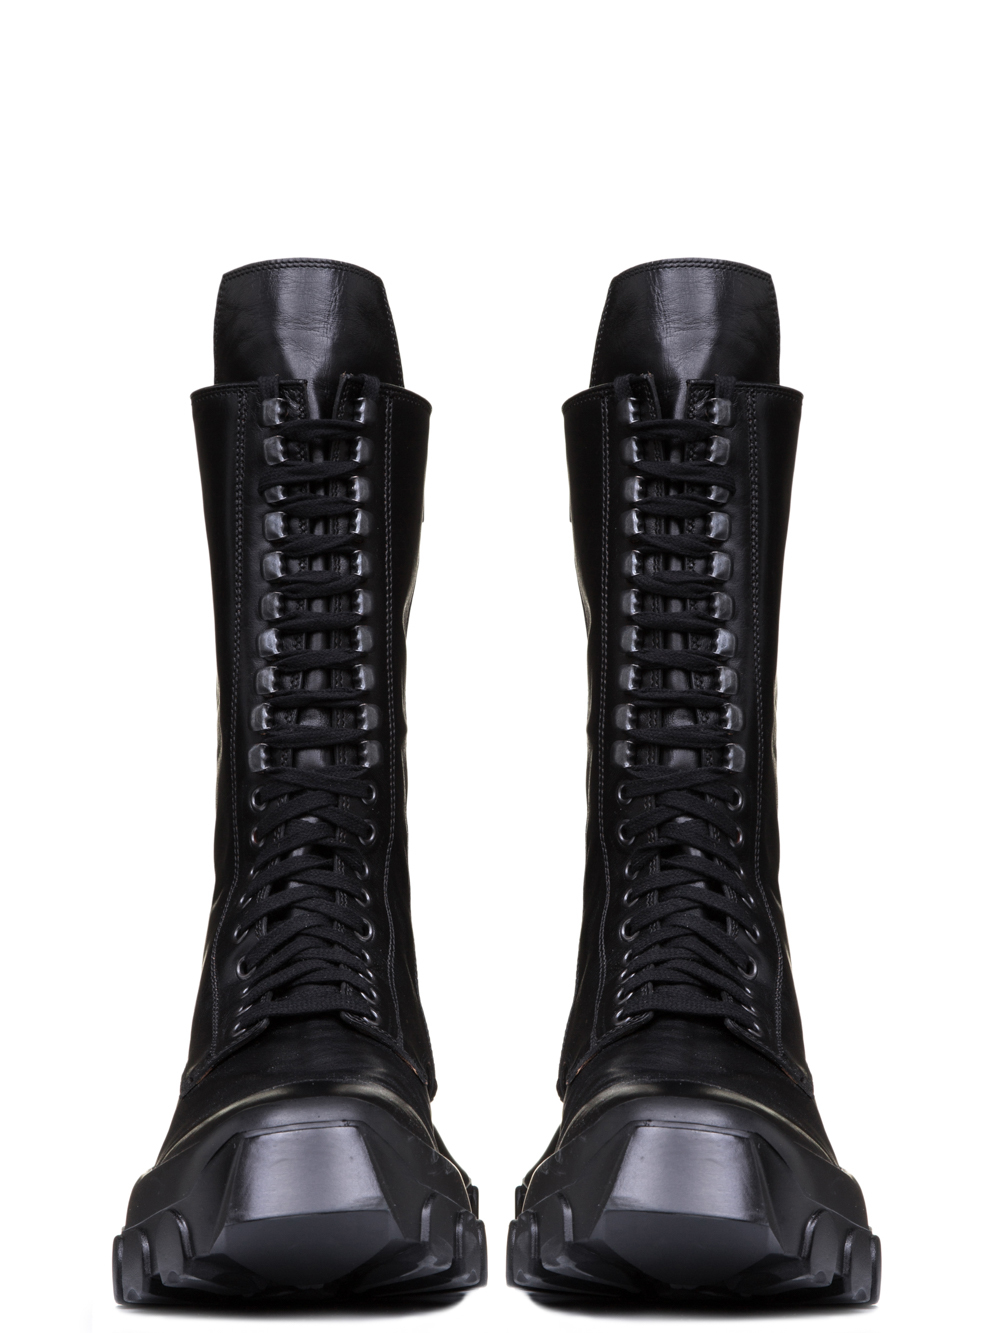 RICK OWENS OFF-THE-RUNWAY LACE UP TRACTOR BOOTS IN BLACK HORSE LEATHER